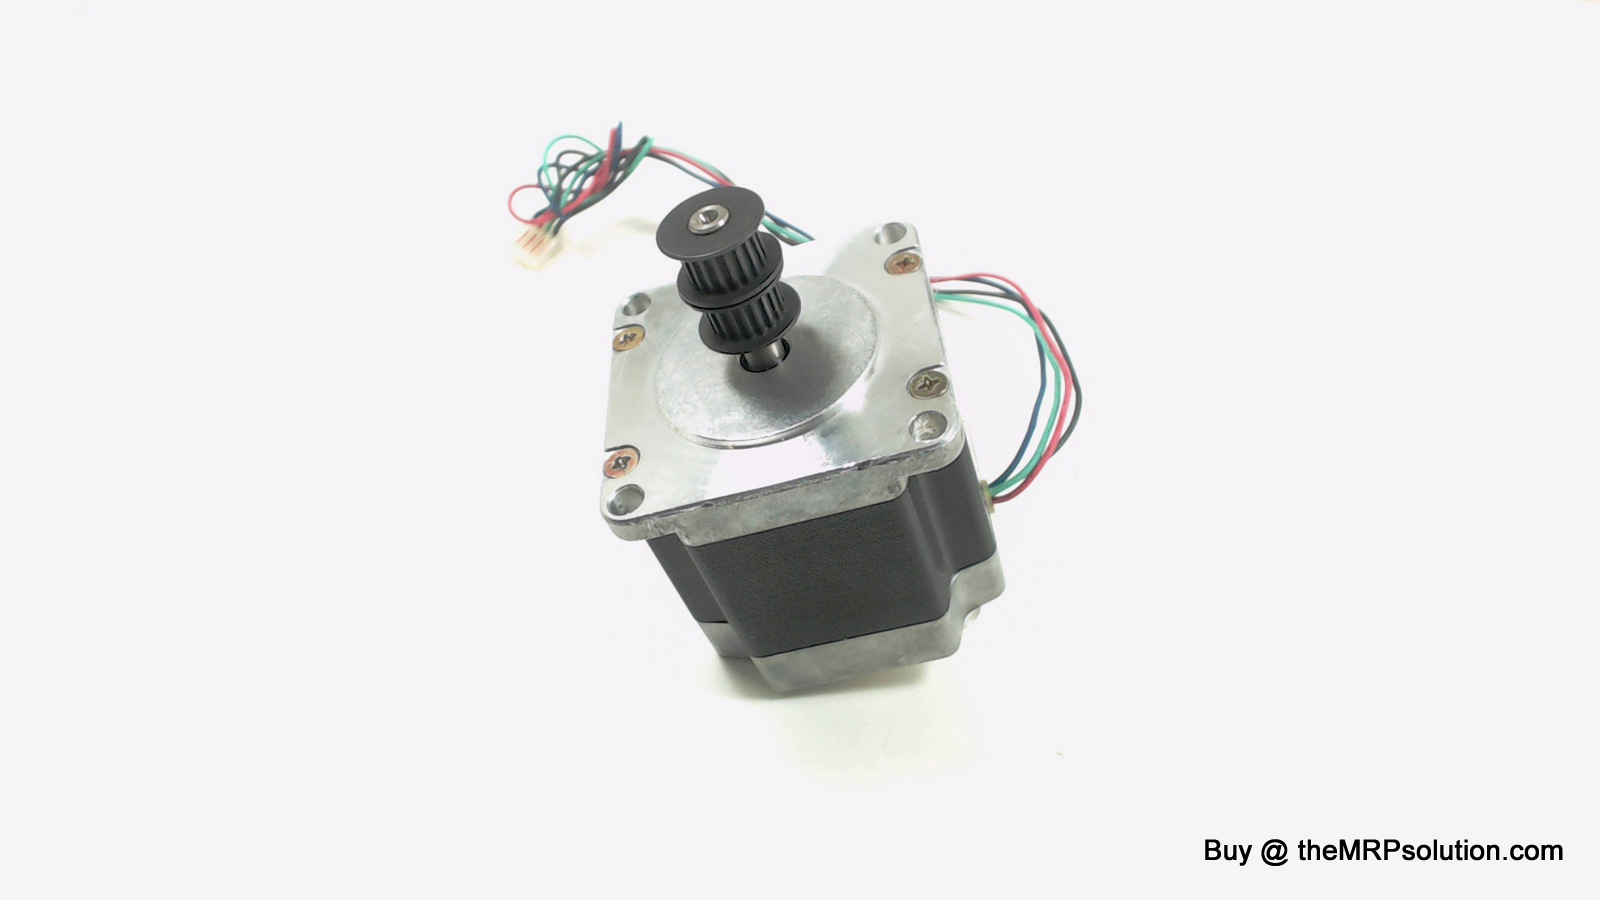 ZEBRA 44023-6M STEPPER MOTOR, S500 New